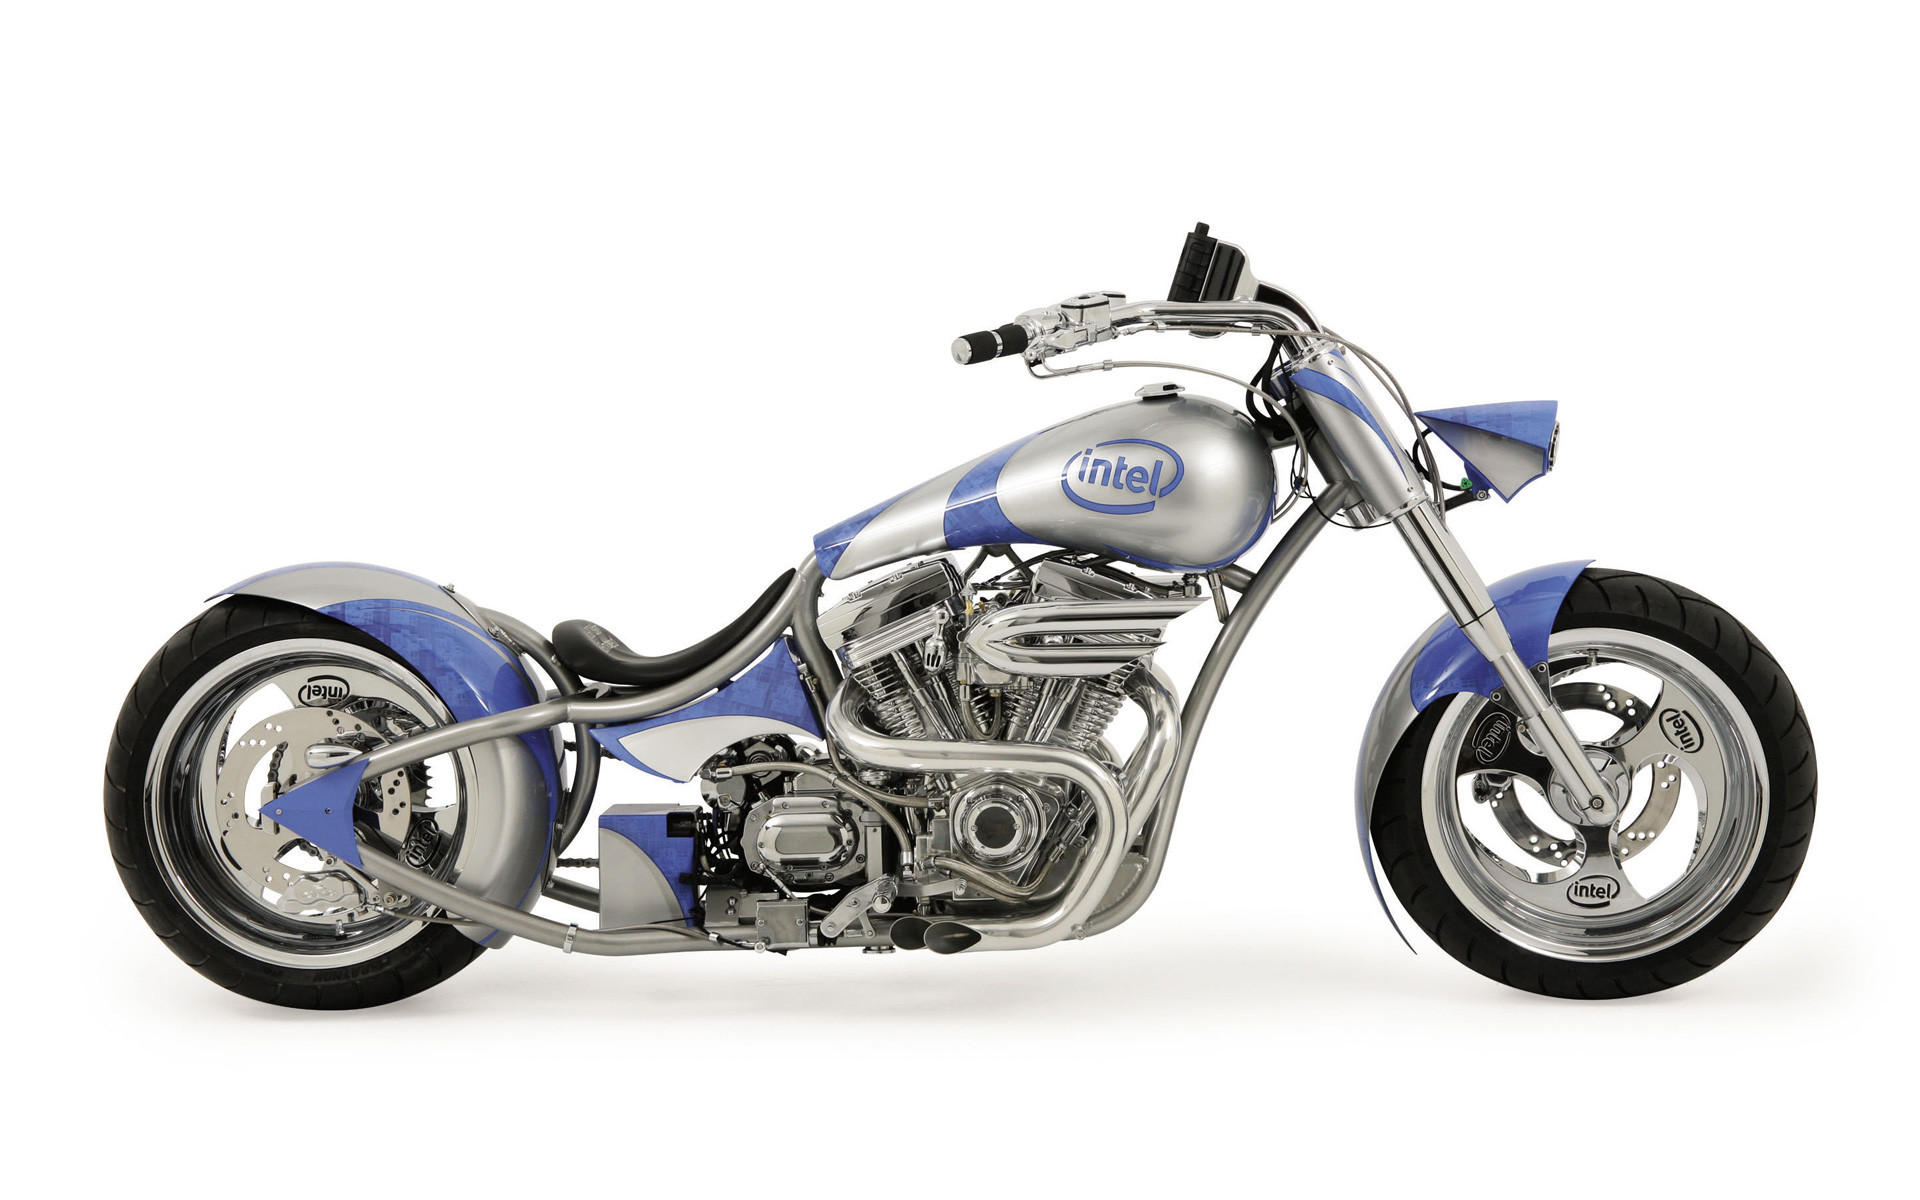 1920x1200 desktop chopper bike images download